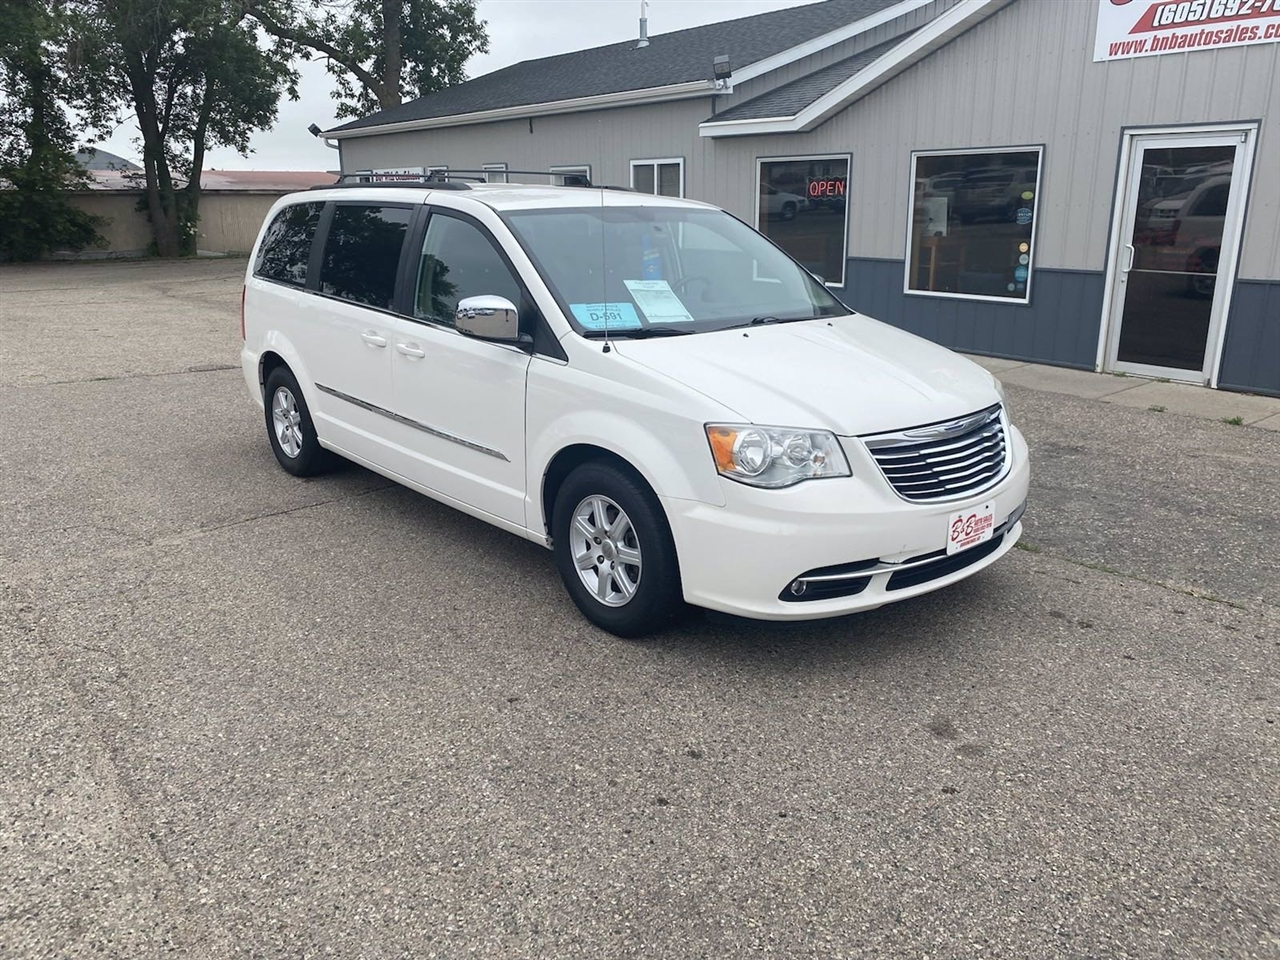 Chrysler Town & Country 4dr Wgn Touring-L 2012